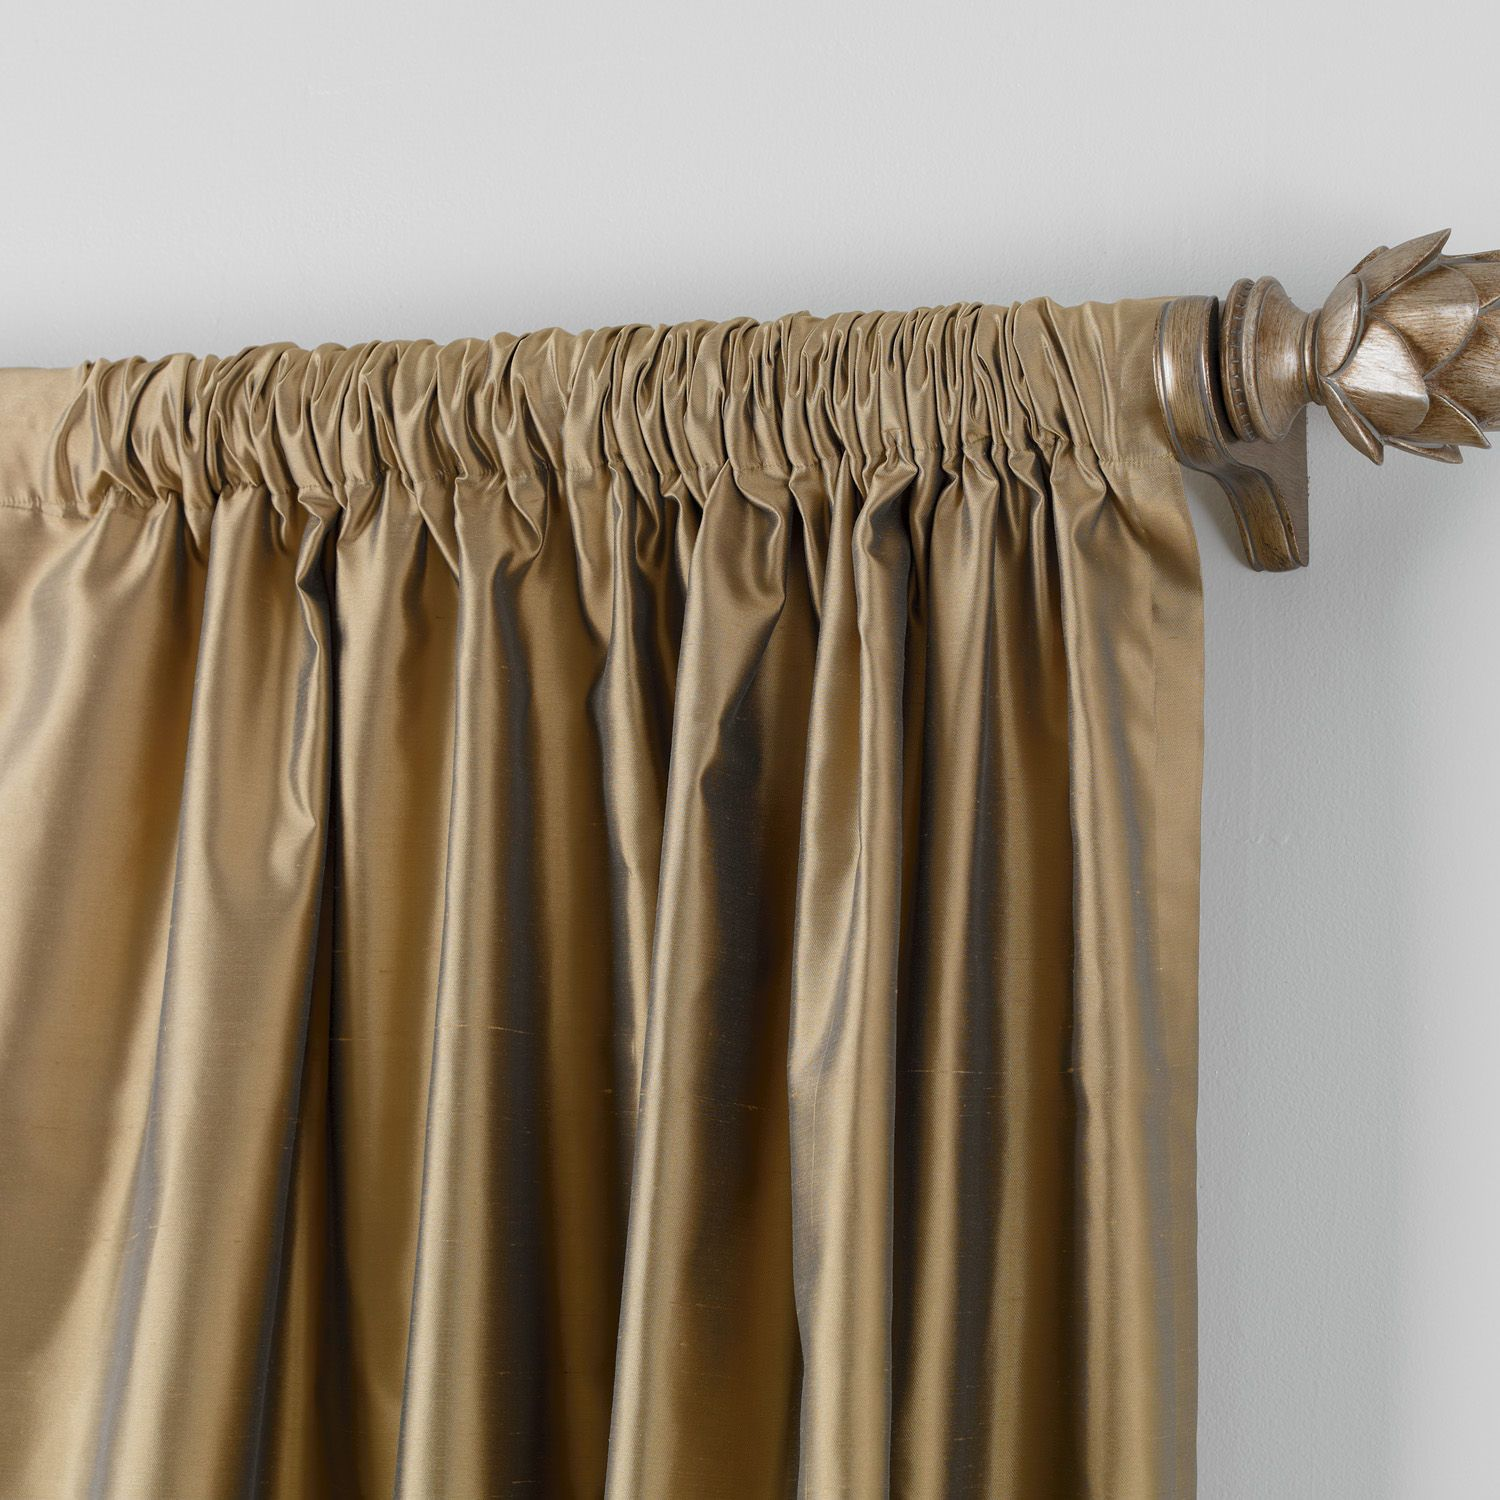 Bronze Satin Dupioni Rod Pocket Panel Ethan Allen Us